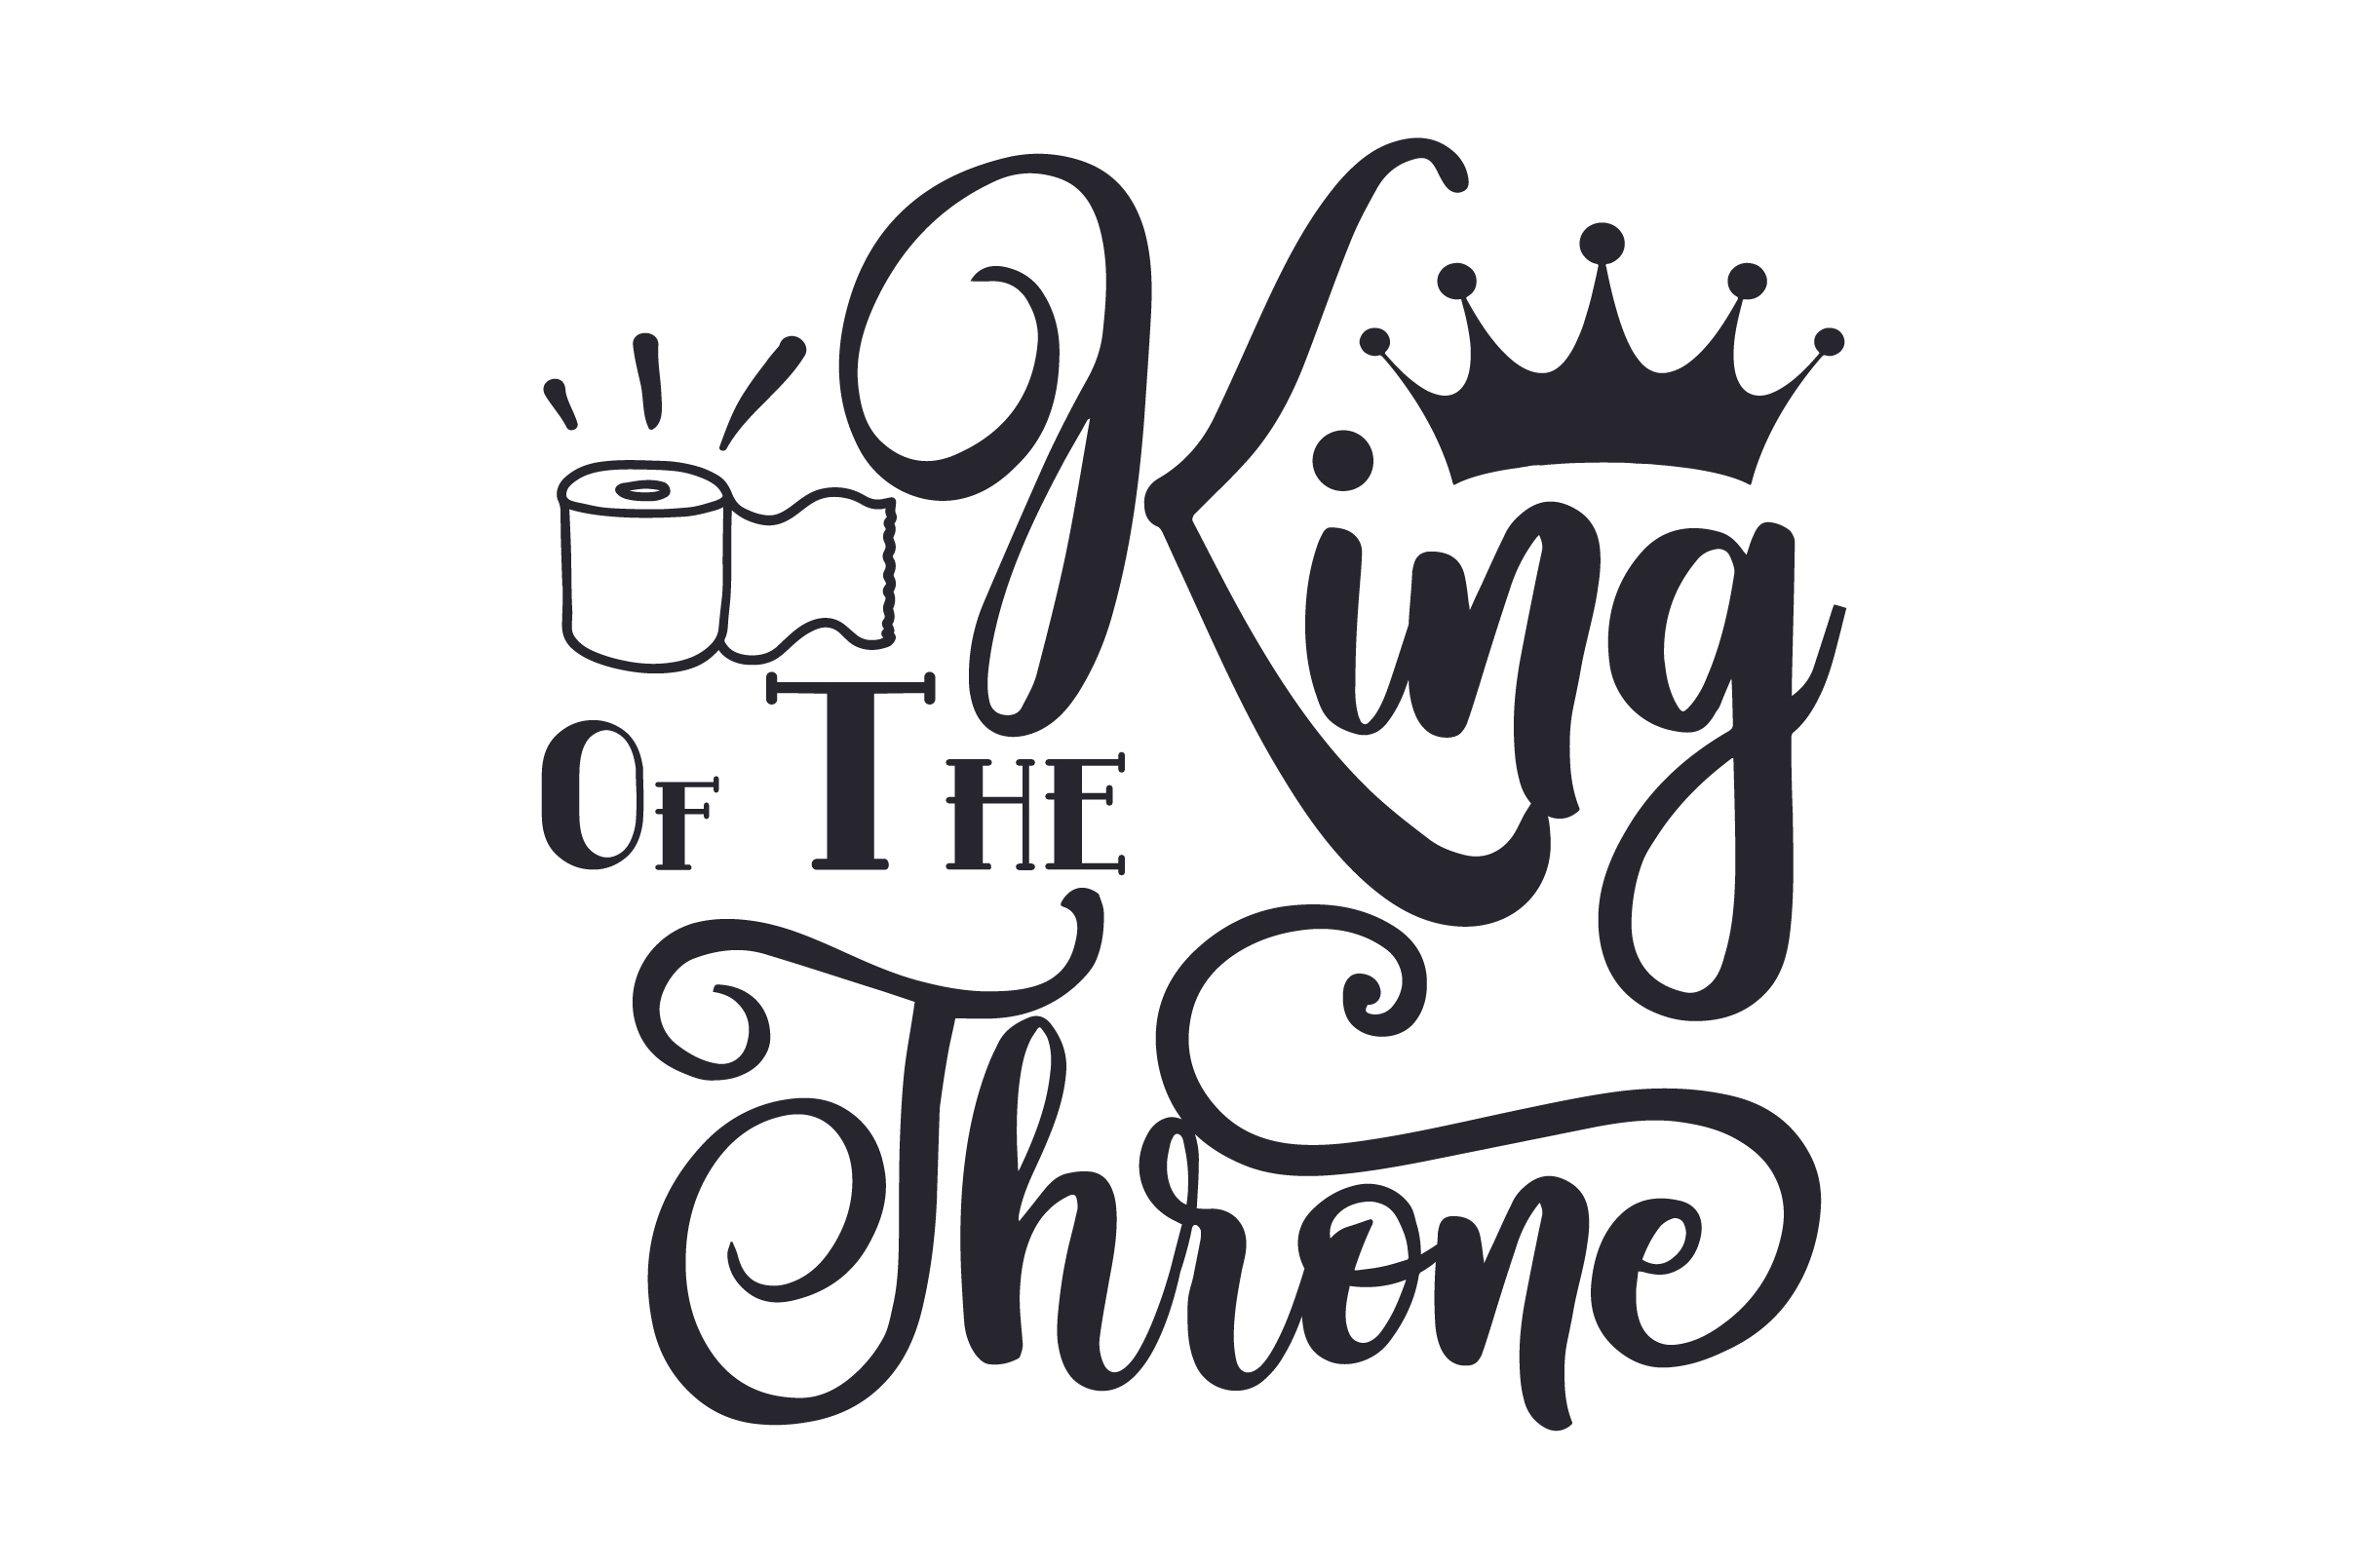 Download Free King Of The Throne Svg Cut File By Creative Fabrica Crafts for Cricut Explore, Silhouette and other cutting machines.